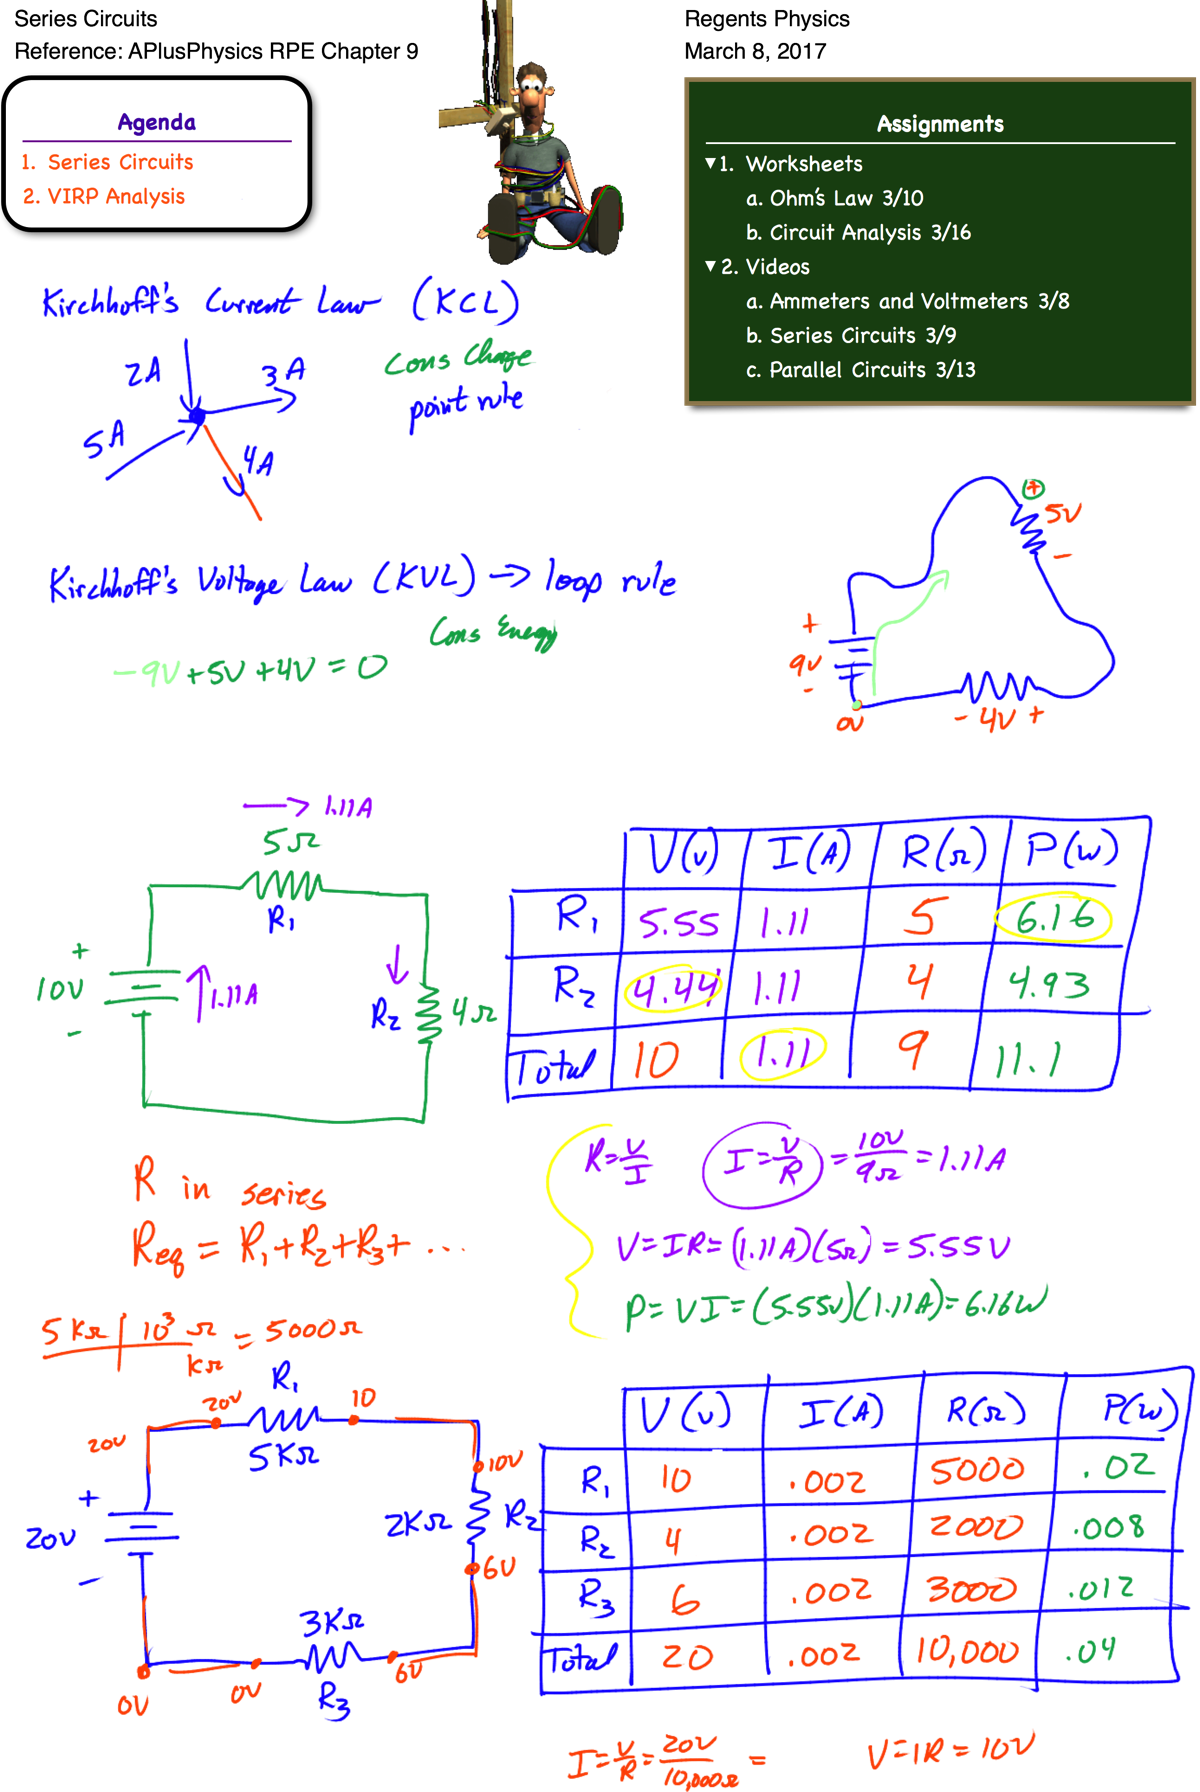 Virp Table Archives Regents Physics Grade 9 Circuit Diagram Worksheet Posted In Circuits Electricity Magnetism Tagged Kcl Kvl Series Leave A Reply